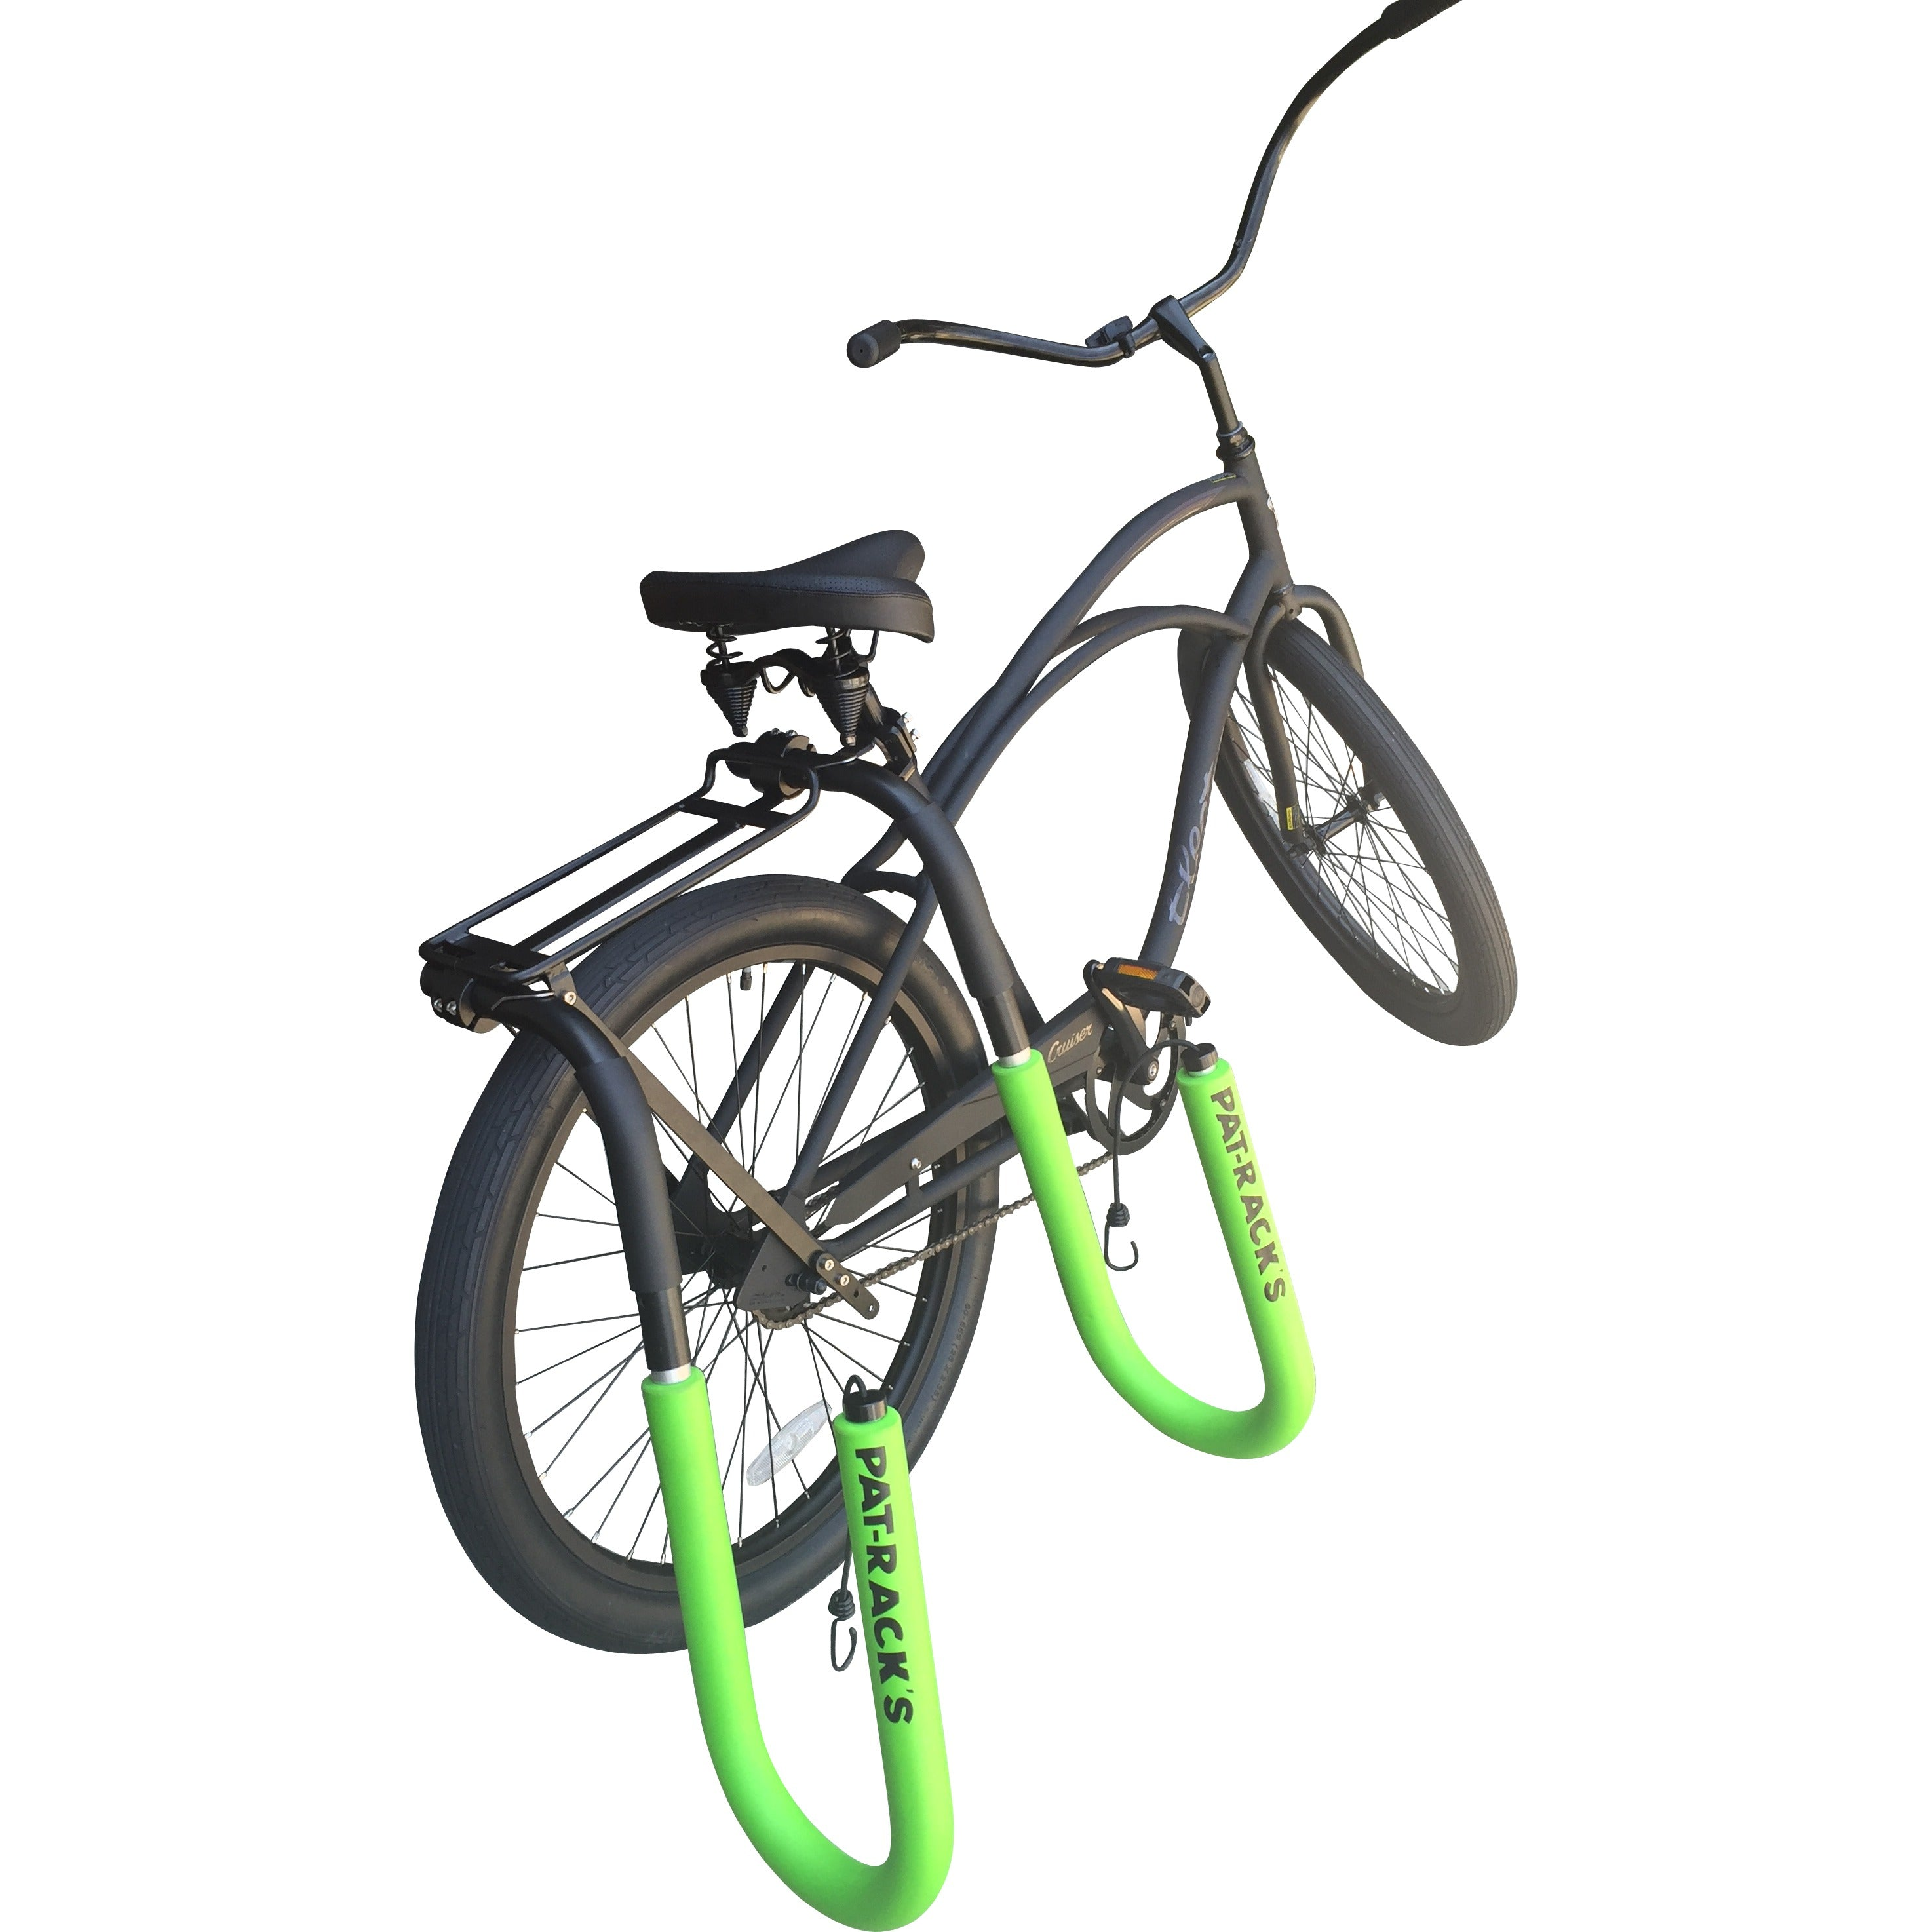 Bicycle Rack for Longboard or Surf SUP